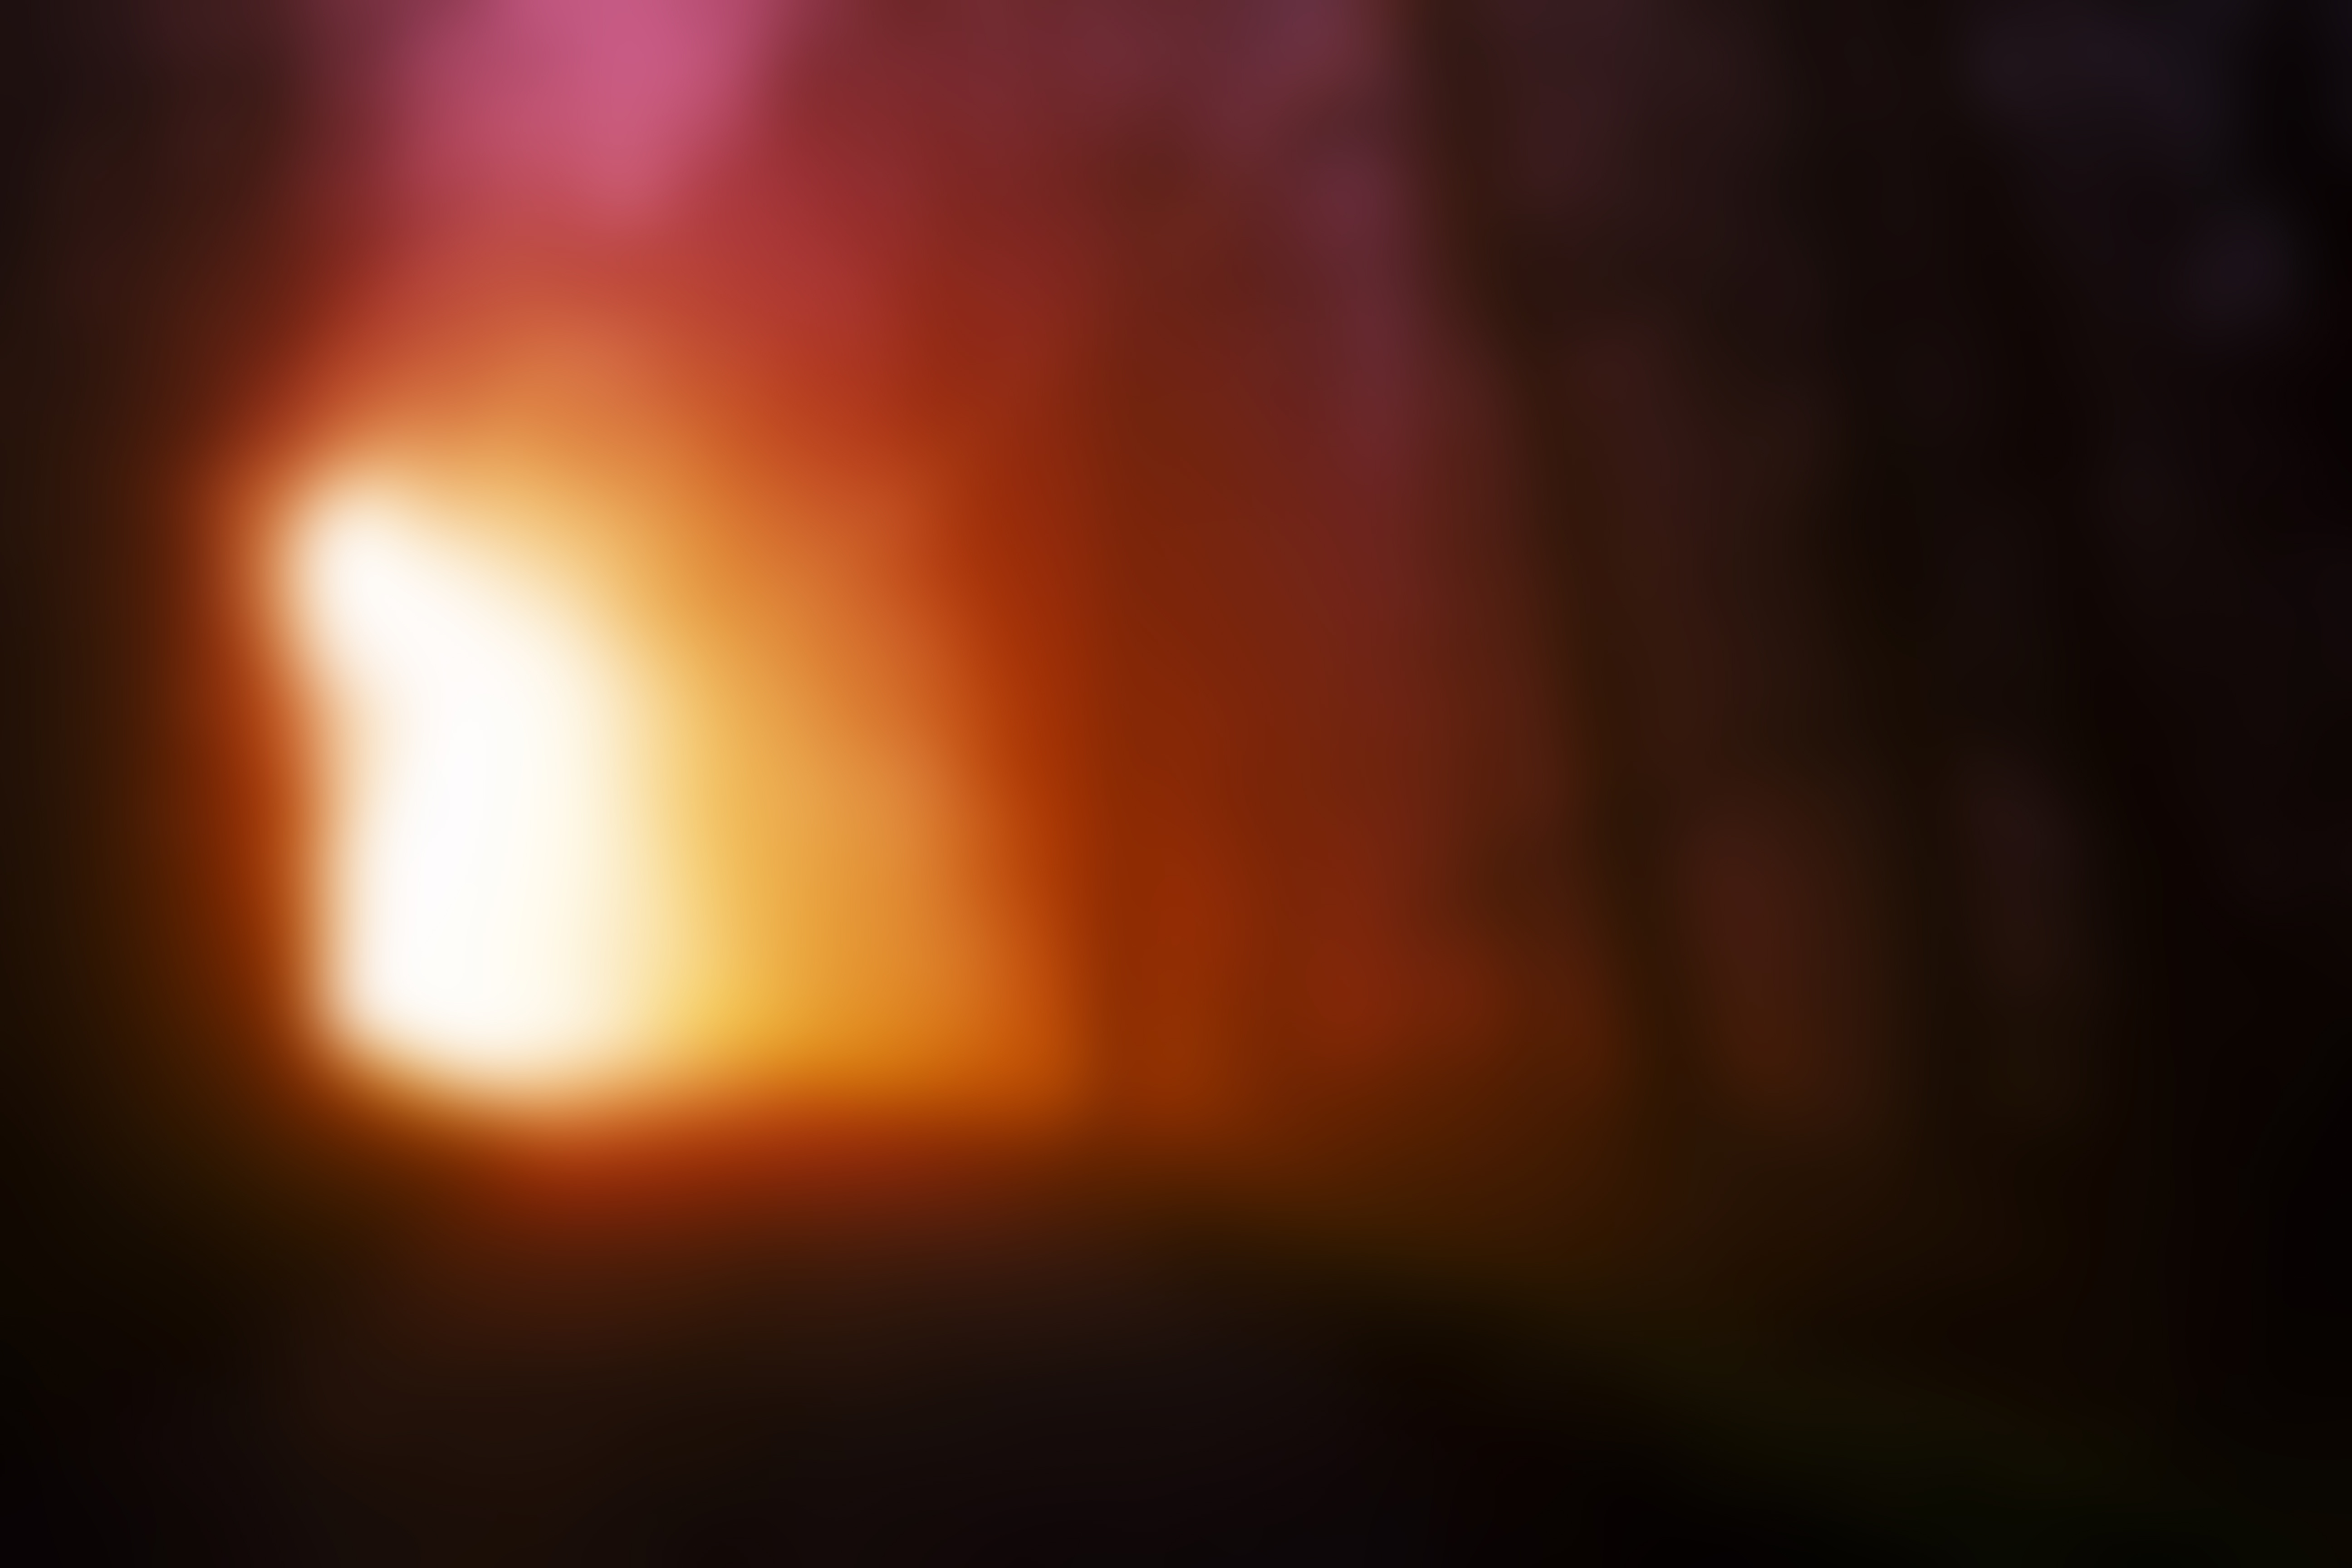 Free stock photo of background, blur, blurred for Sun Light Effect Background  67qdu